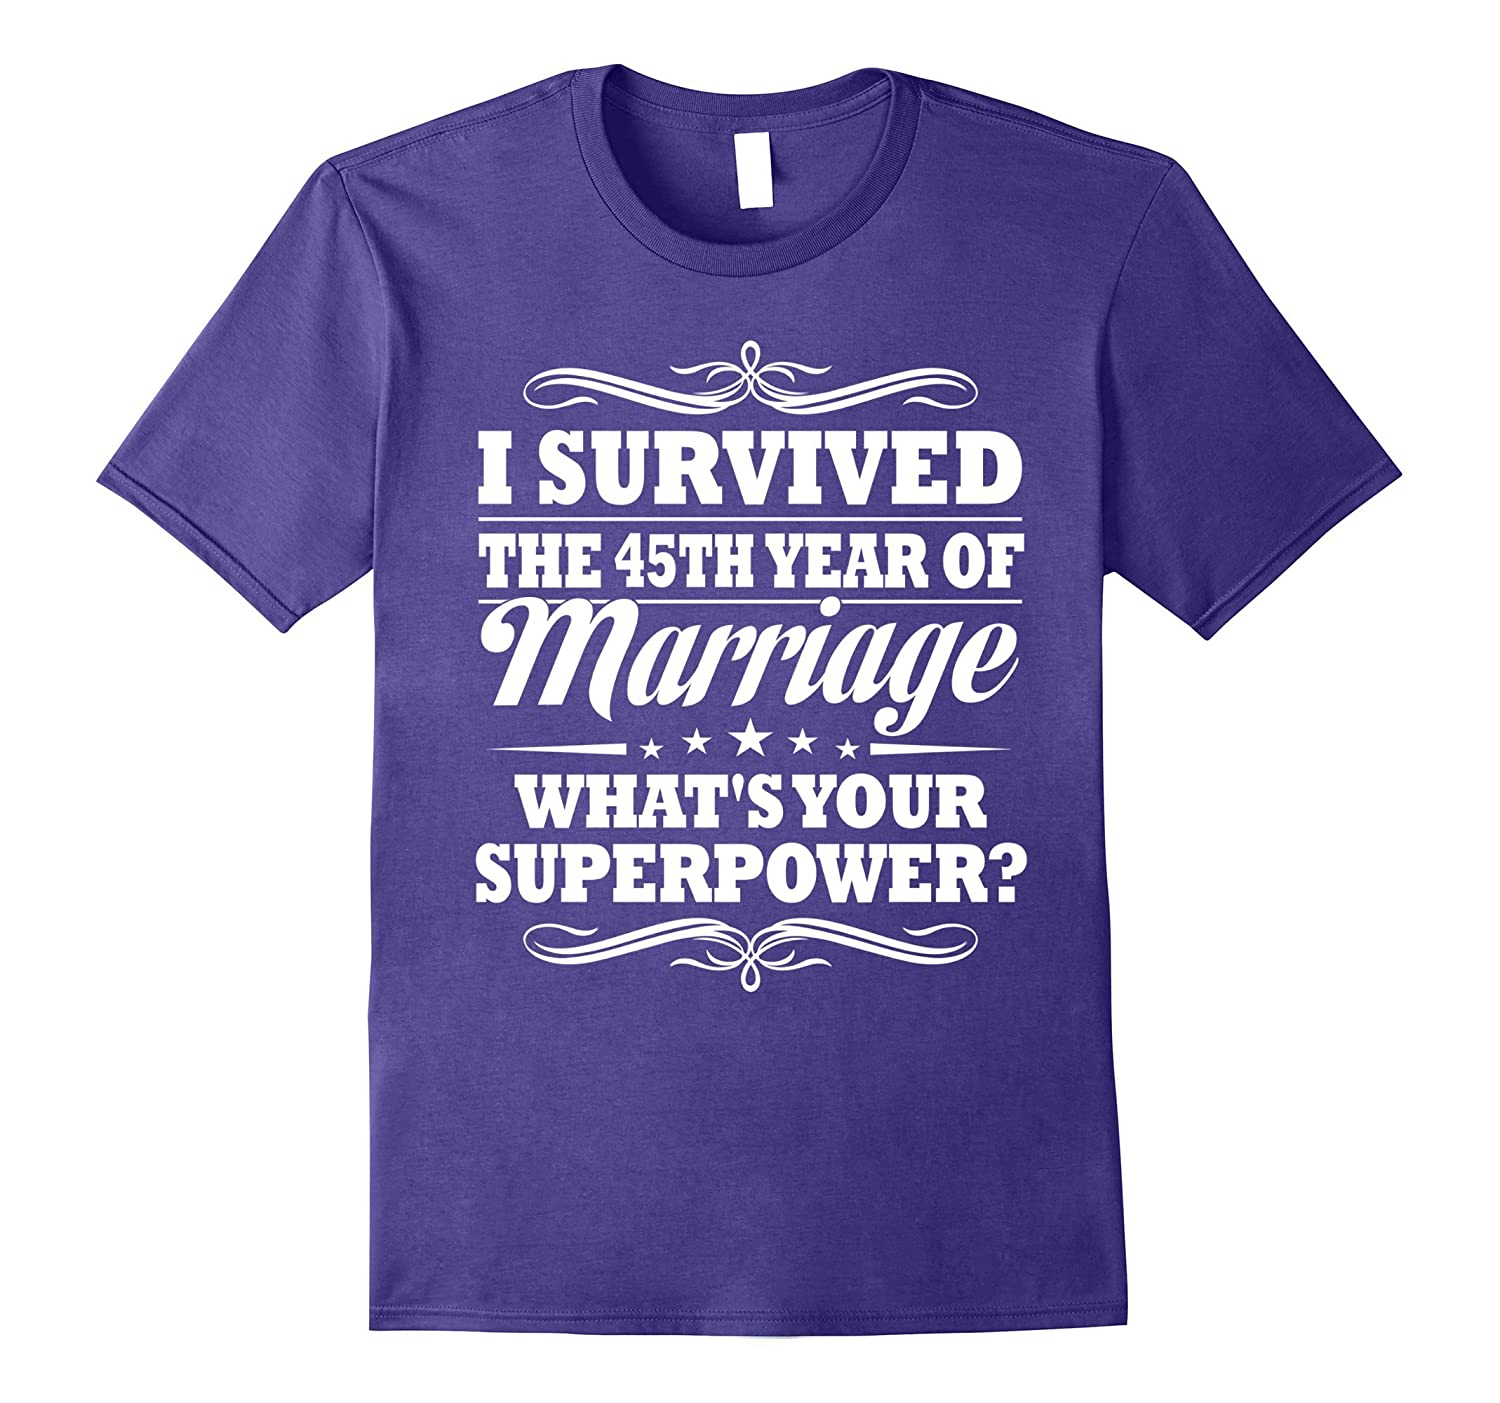 45th Wedding Anniversary Gift.45th Wedding Anniversary Gift Ideas For Her Him I Survived Art